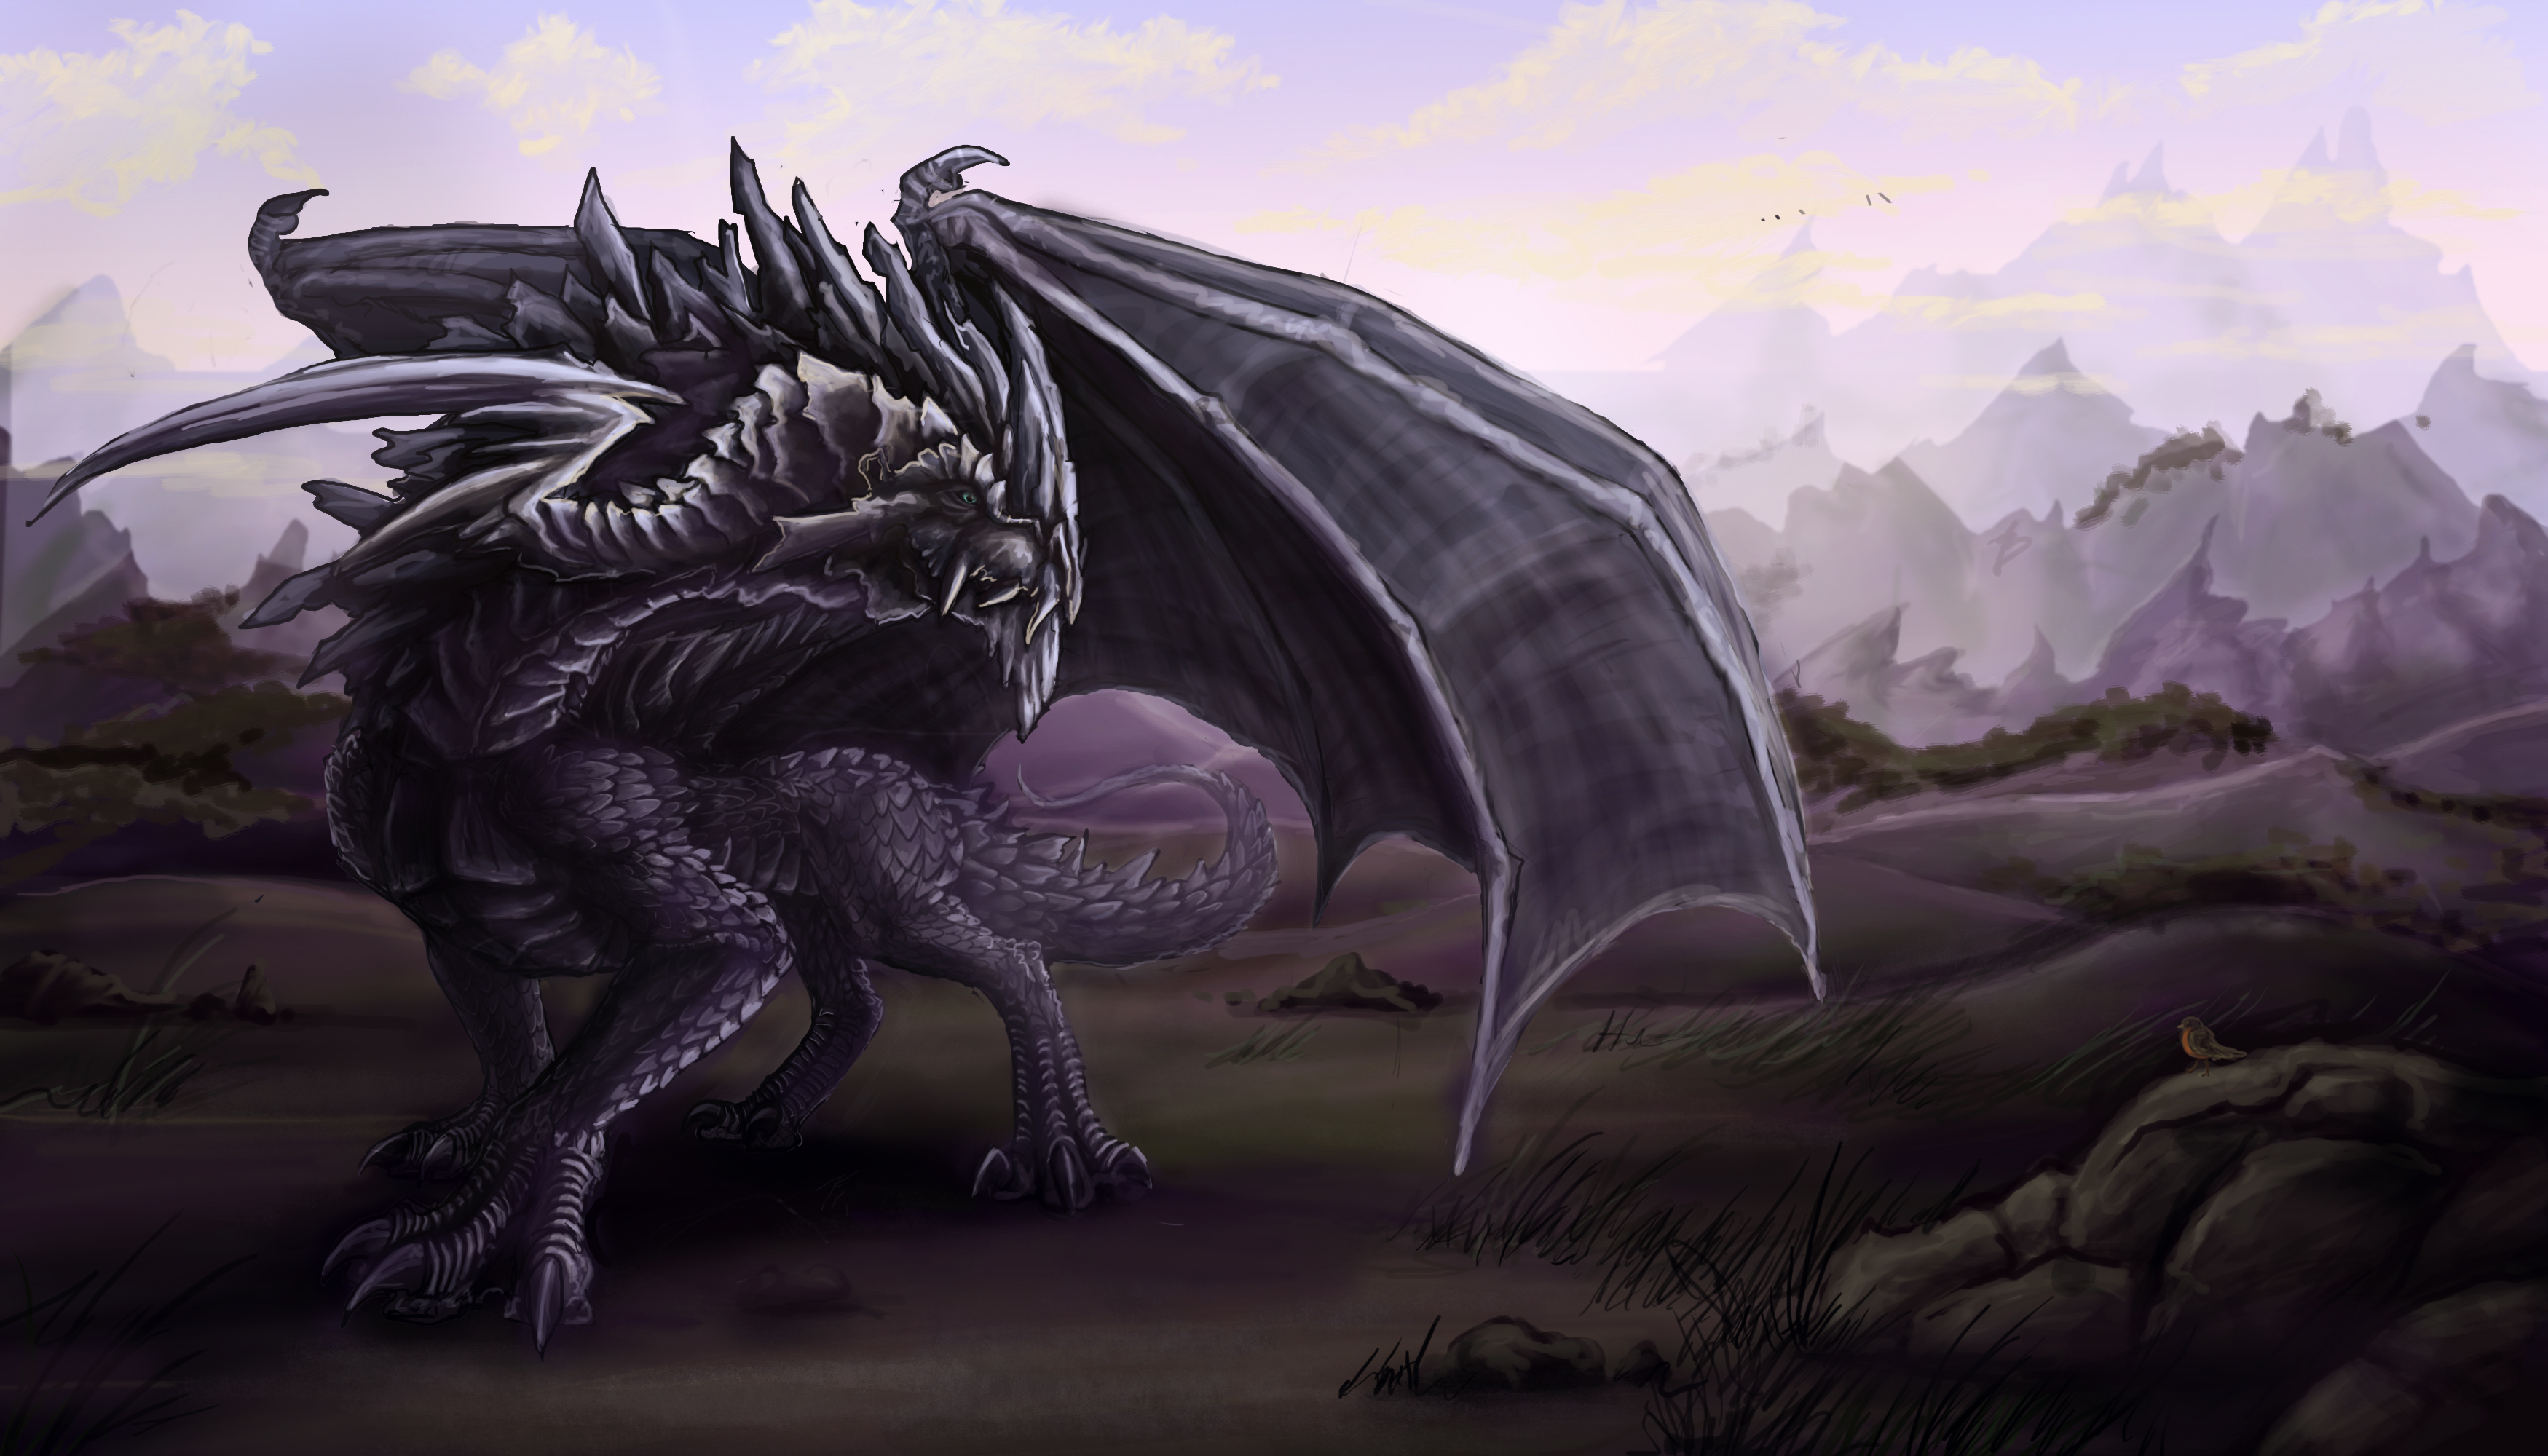 Wallpaper Iphone 5 Cute Purple Black Dragon Full Hd Wallpaper And Background Image